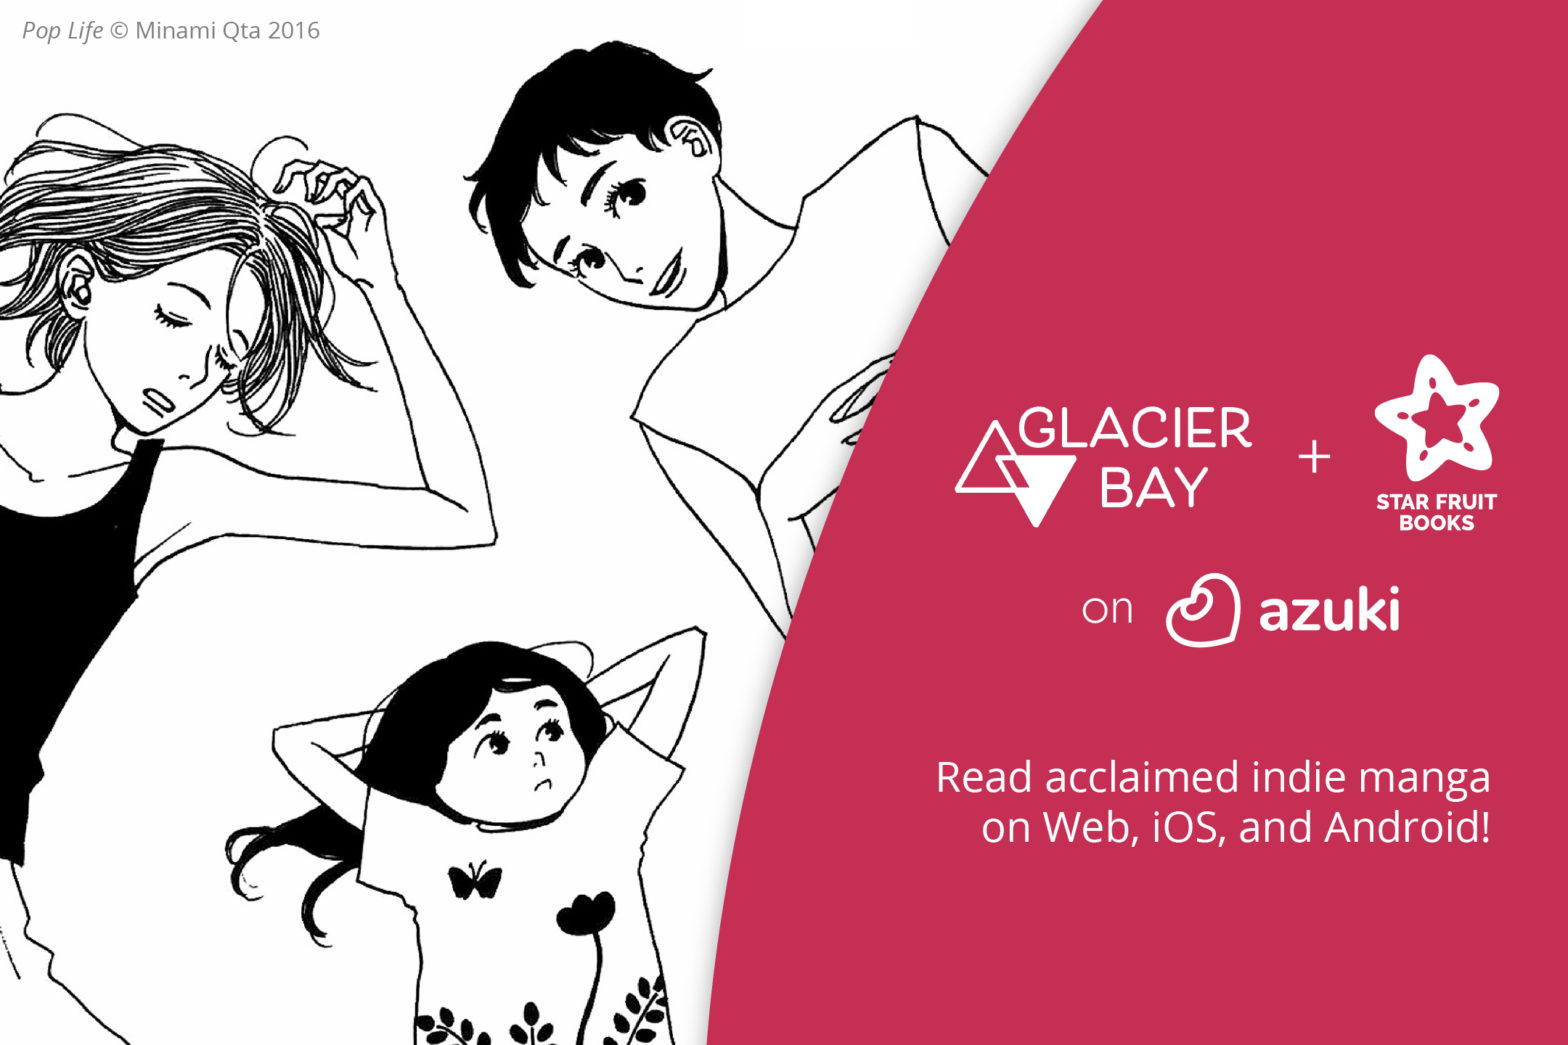 An adult woman asleep on the ground and another next to her smiling. A young girl is laying next to them. Text reads: Glacier Bay and Star Fruit Books on Azuki. Read acclaimed indie manga on Web, iOS, and Android.